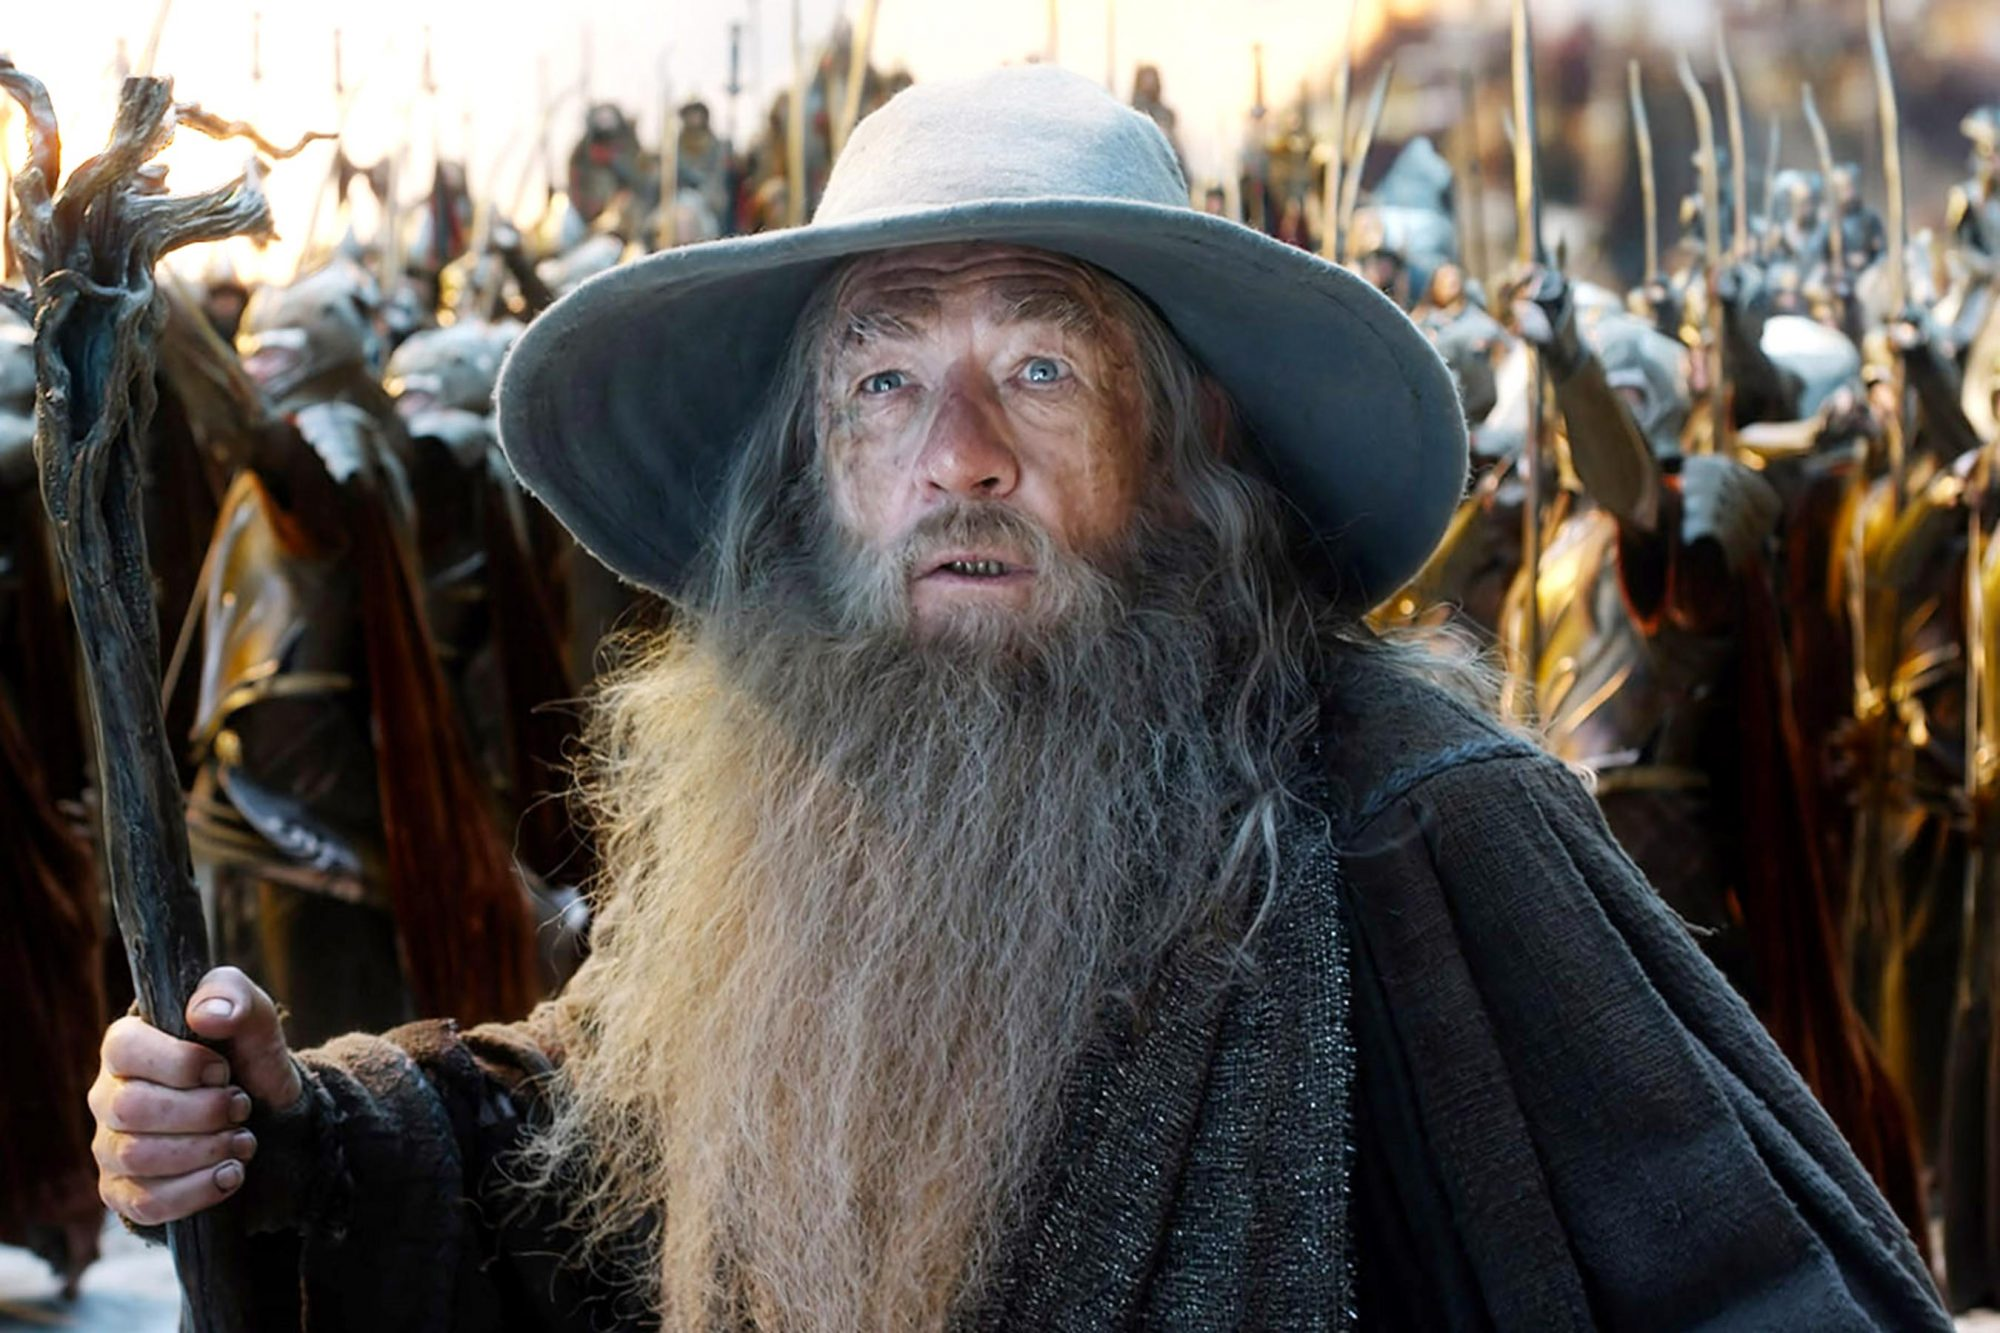 THE HOBBIT: BATTLE OF THE FIVE ARMIES, Ian McKellen, 2014. ©Warner Bros. Pictures/courtesy Everett